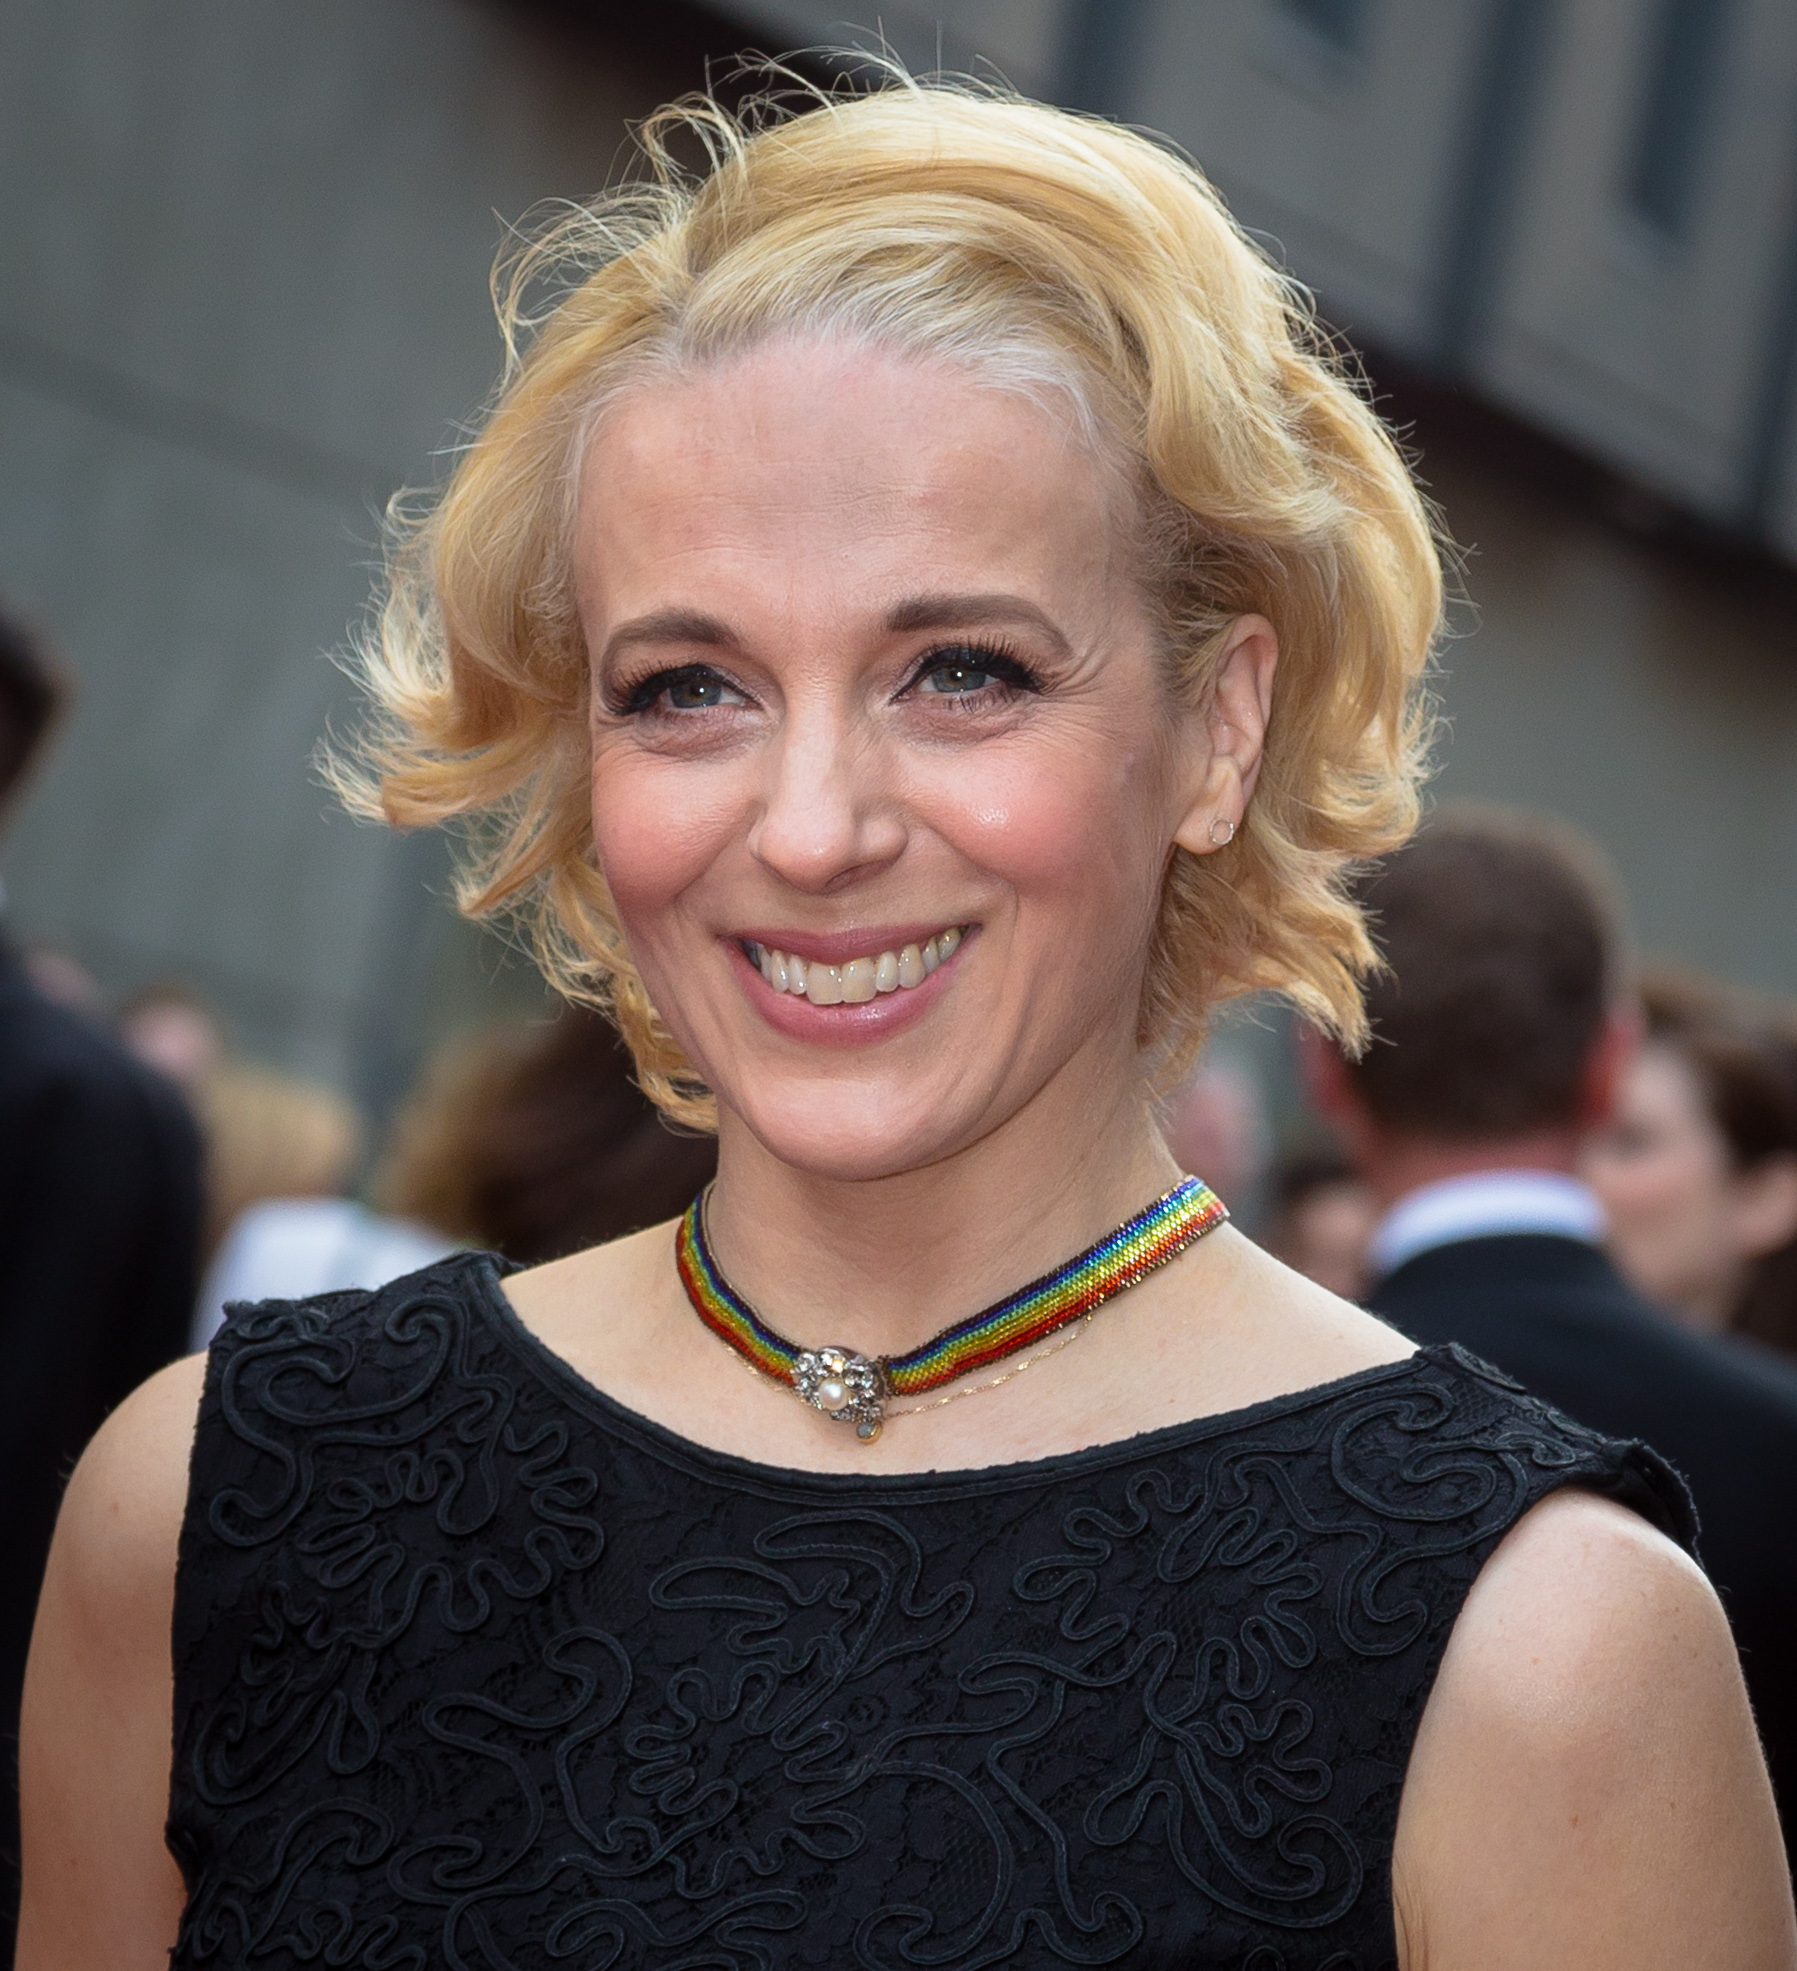 The 45-year old daughter of father (?) and mother(?) Amanda Abbington in 2020 photo. Amanda Abbington earned a million dollar salary - leaving the net worth at 1.5 million in 2020